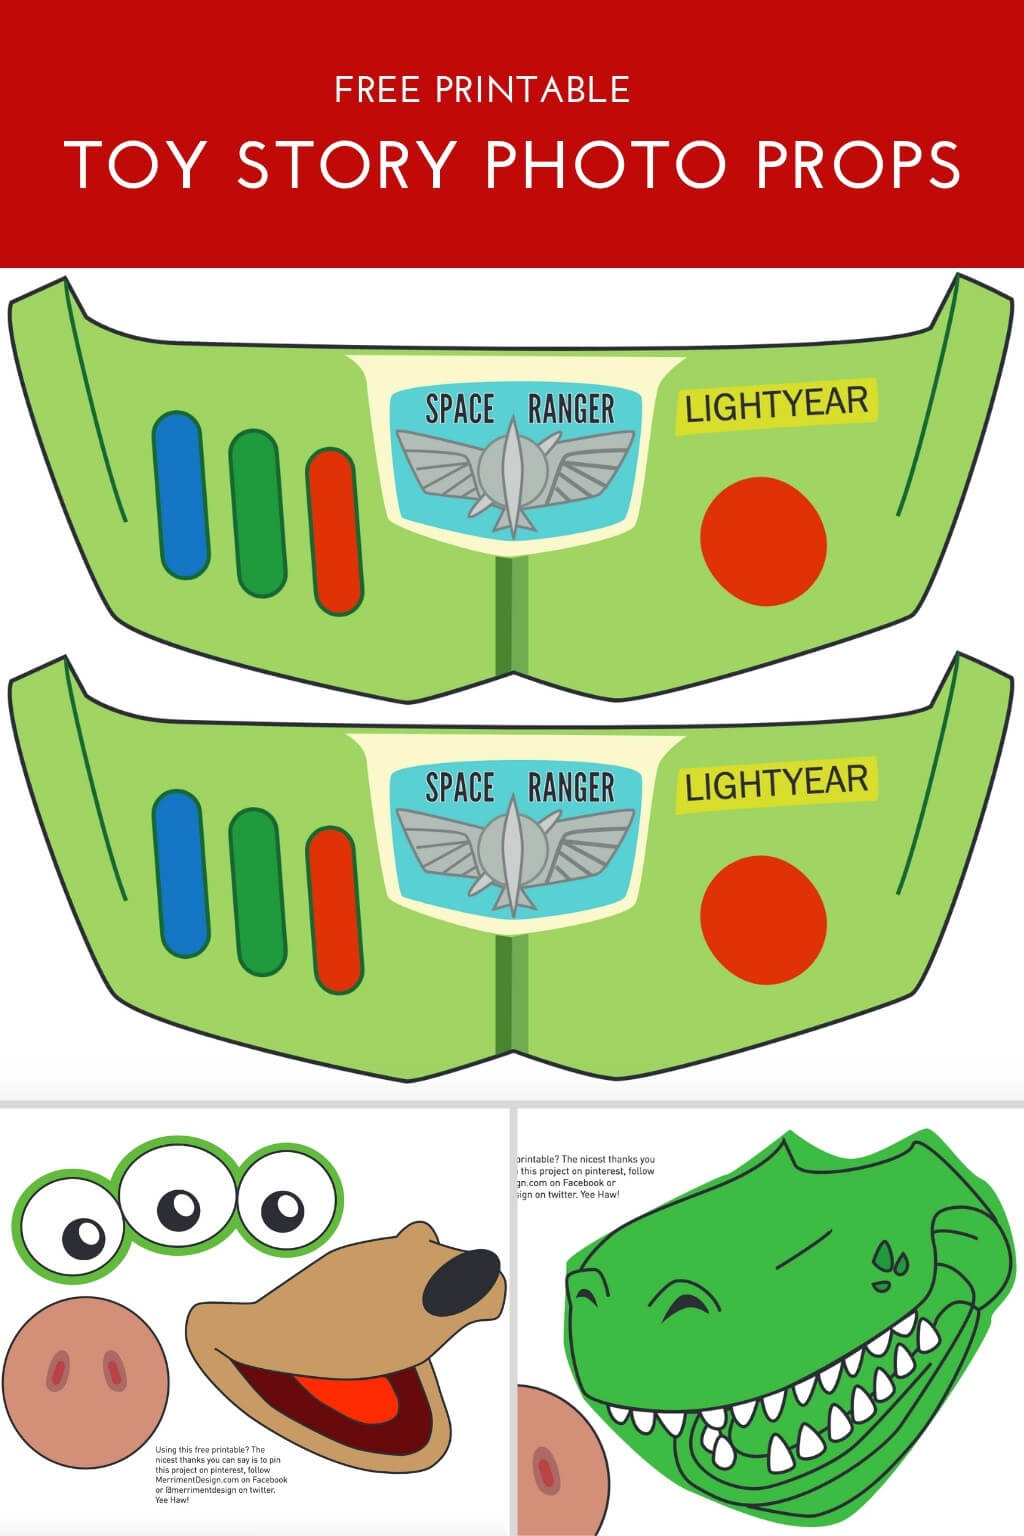 Toy Story Photo Booth Props {Free Printable Pdf} - Merriment Design - Free Photo Booth Props Printable Pdf